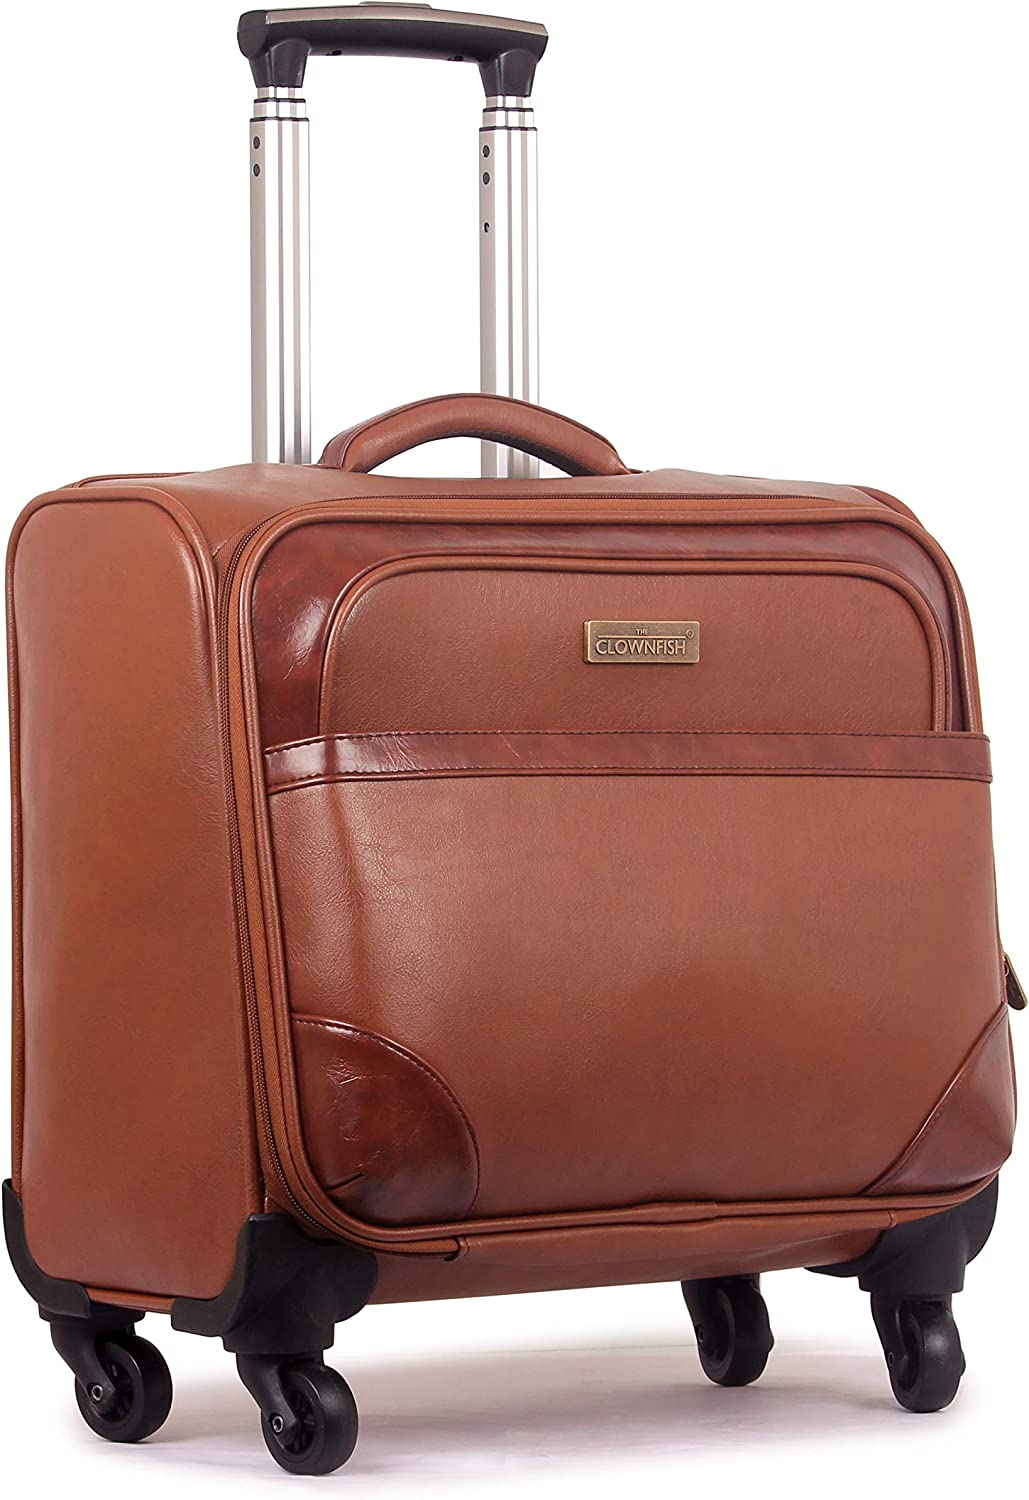 Rolling Briefcase Wheeled Briefcase Laptop Case Wheels Rolling Laptop Rolling Laptop Briefcase Roller Briefcase Rolling Case Business Bag with Wheels Laptop Luggage Bag with Wheels Rolling Laptop Case